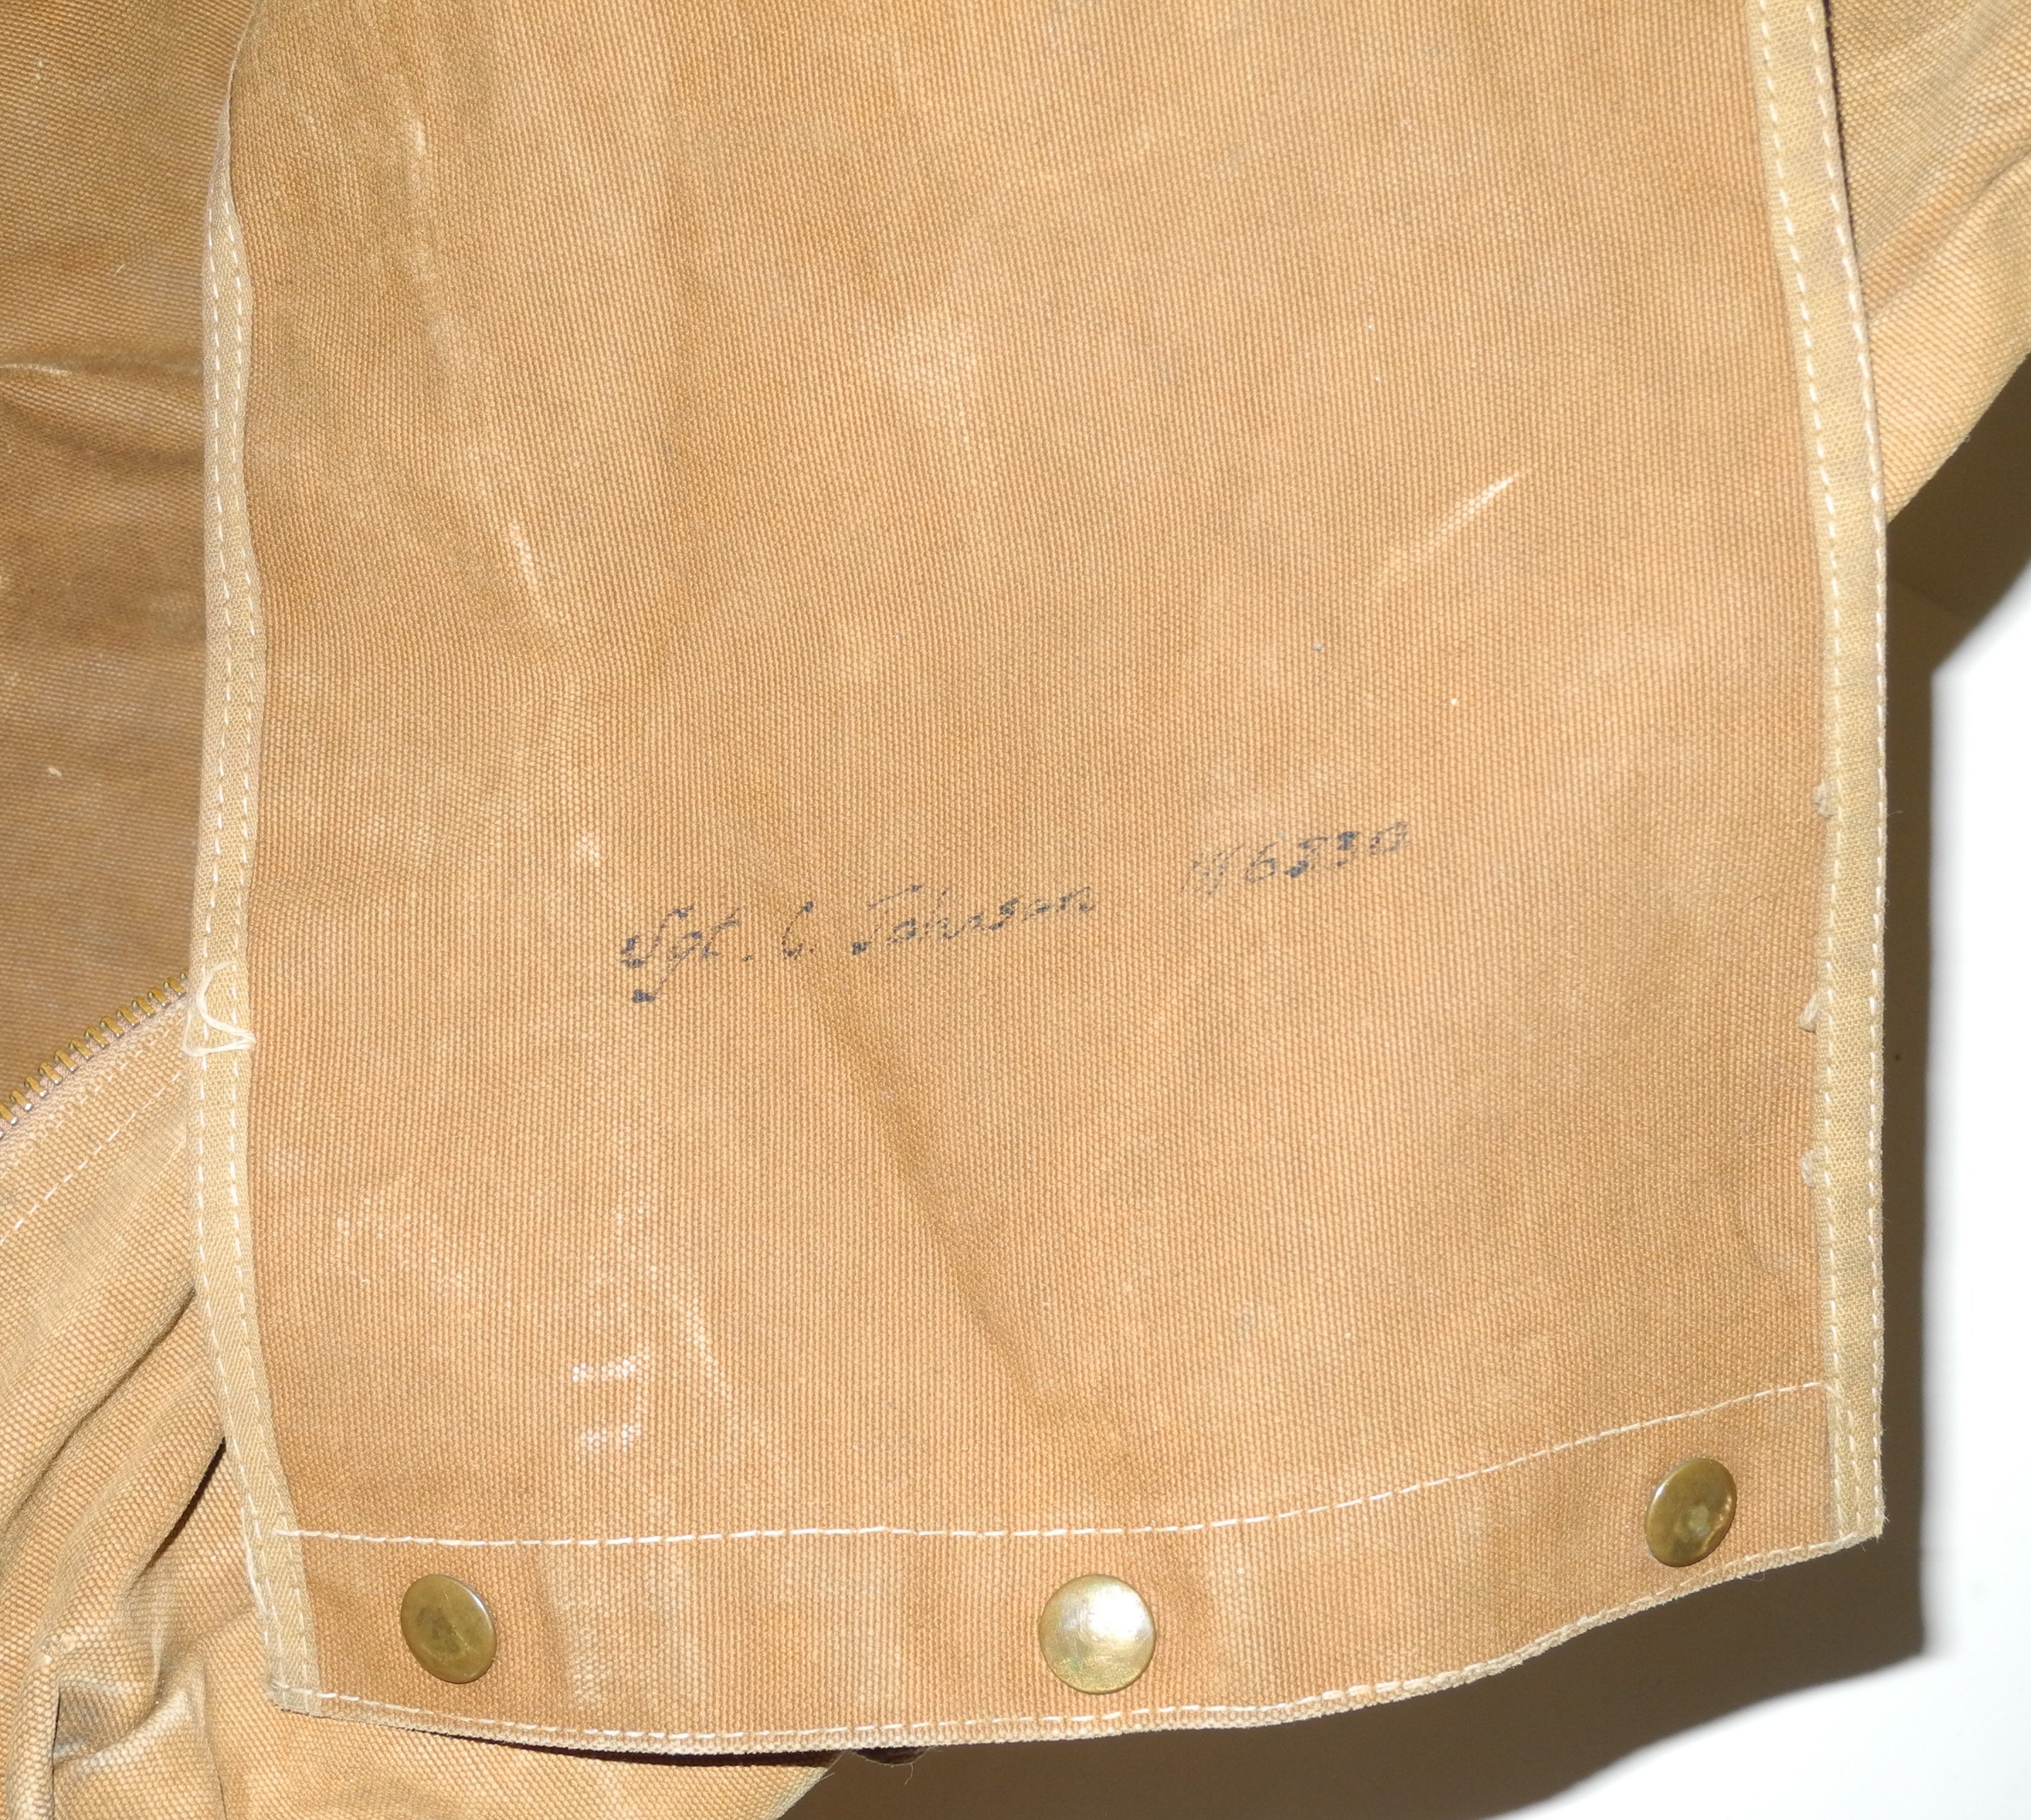 Early wartime RAF parachute bag